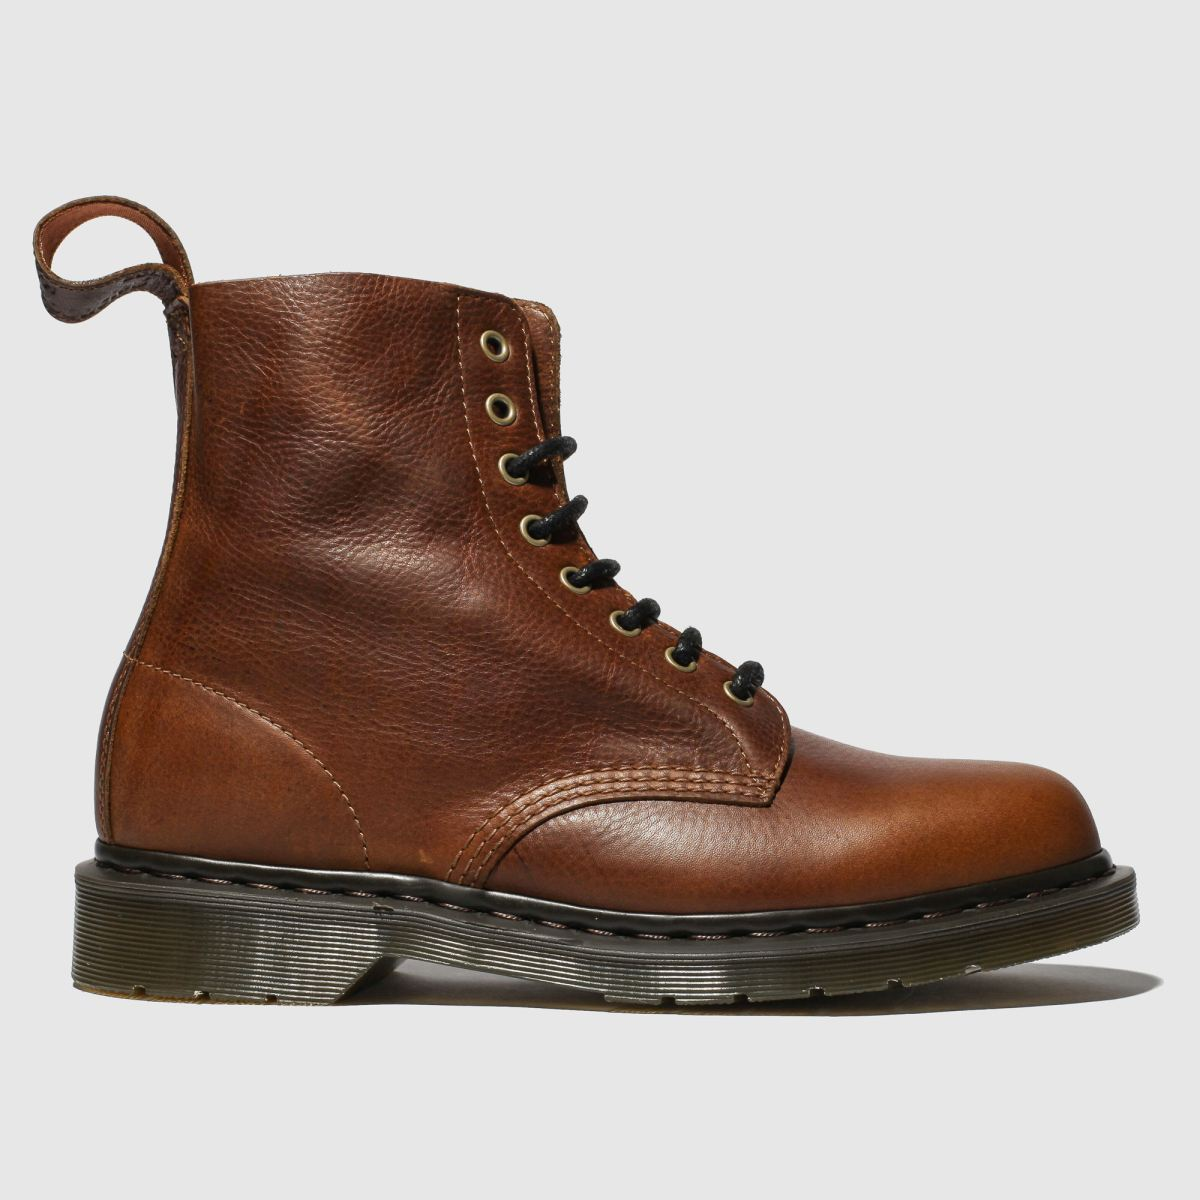 Dr Martens Brown 1460 8 Eye Boots